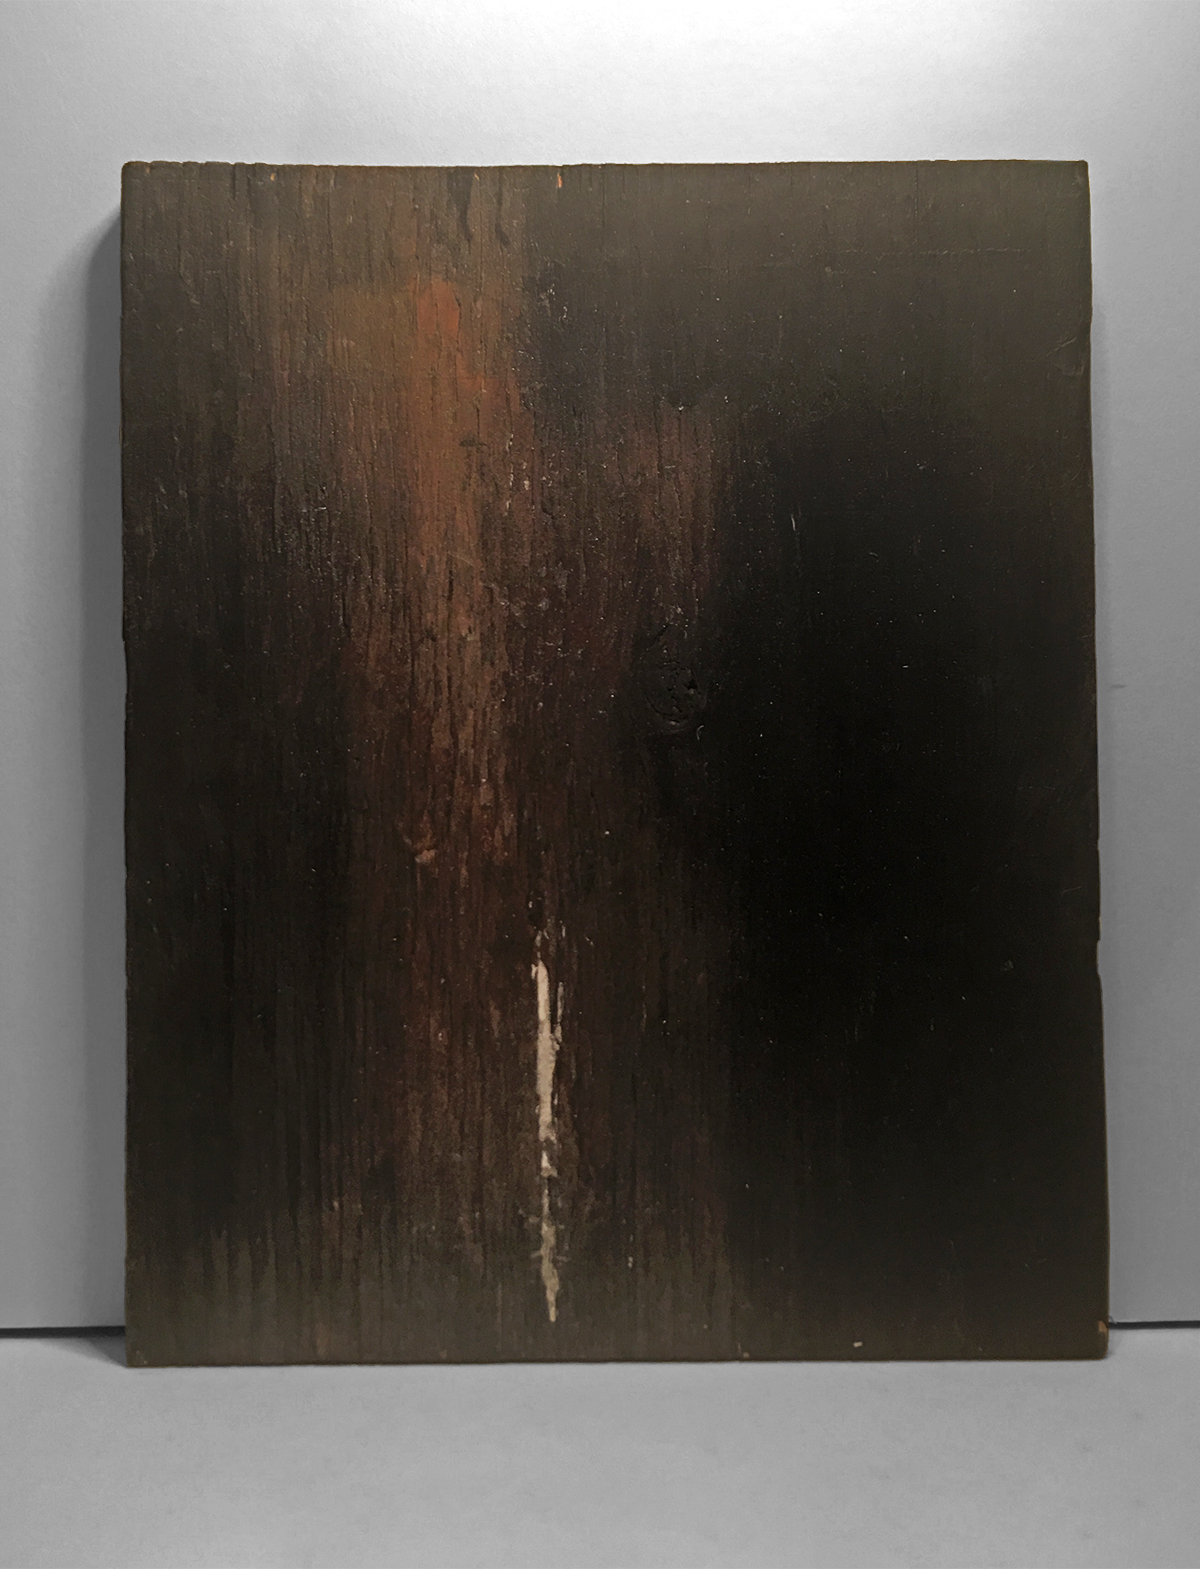 ONE NIGHT   Acrylic, wood  10 x 8 Inches